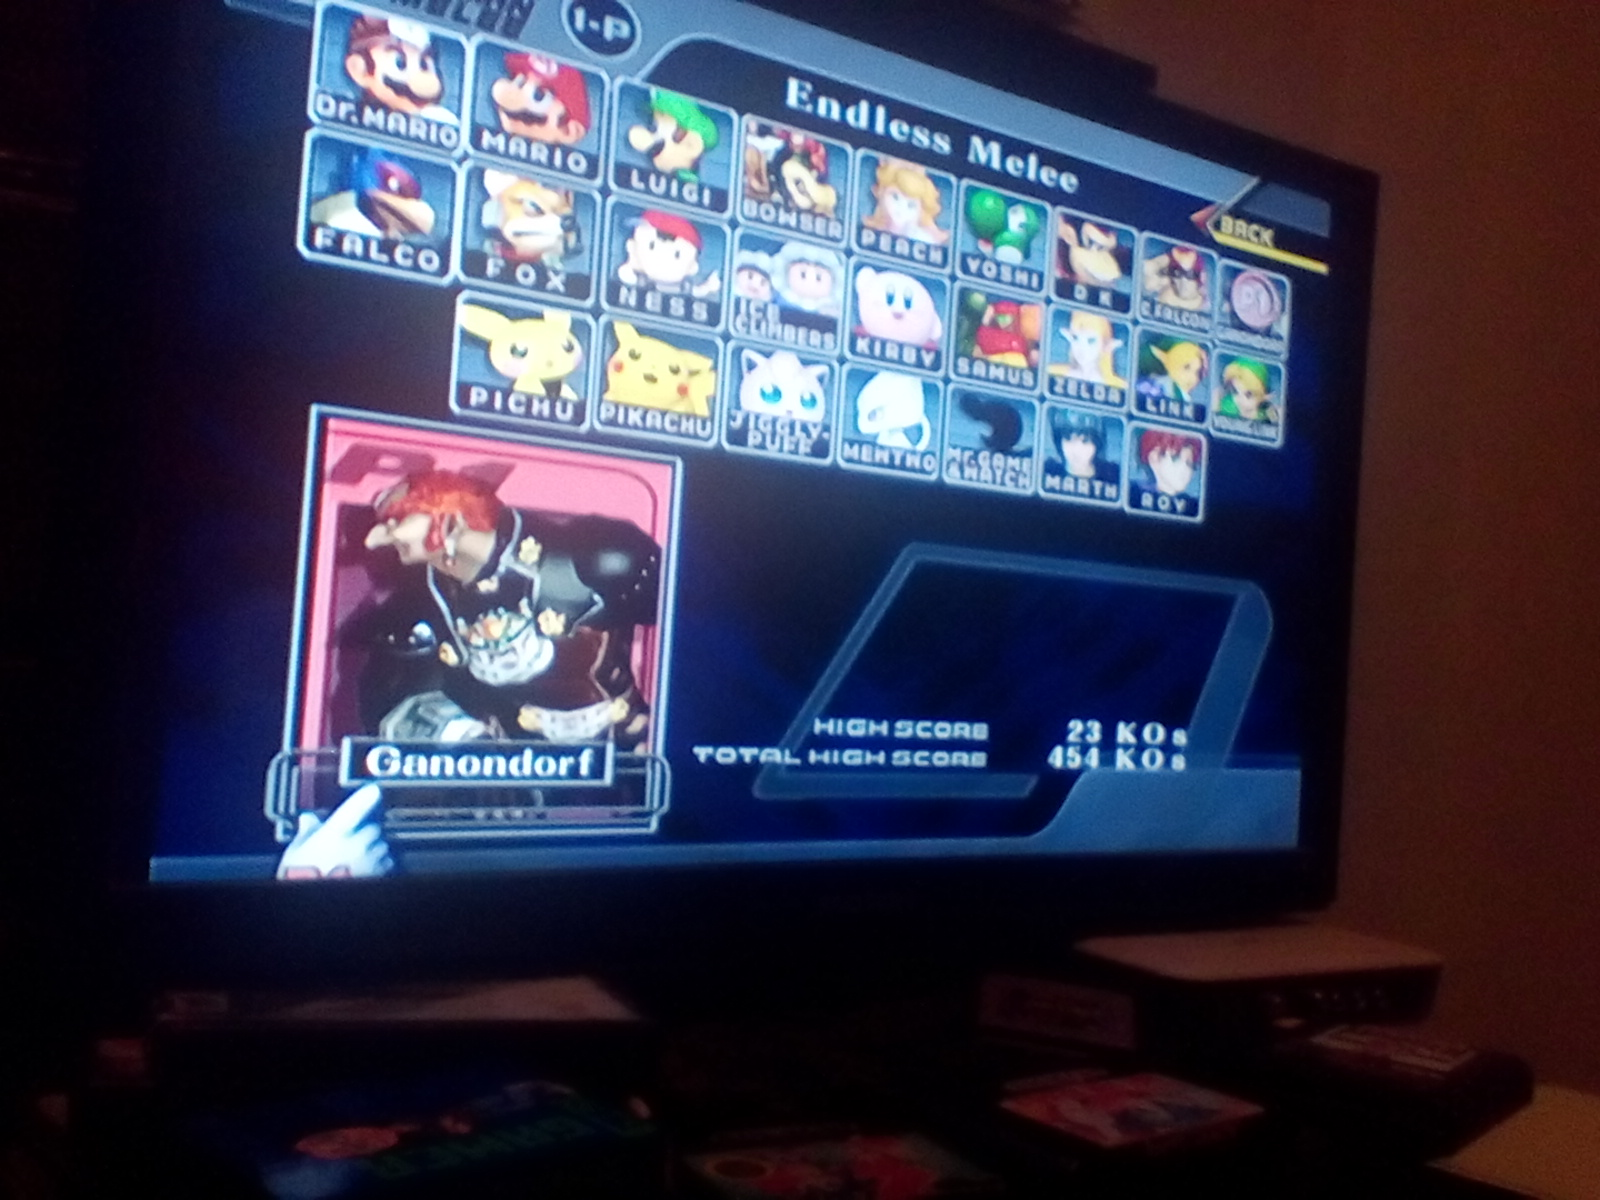 DrJoshDaReagamer22G: Super Smash Bros. Melee: Endless Melee: Ganondorf (GameCube) 23 points on 2019-02-17 21:30:53